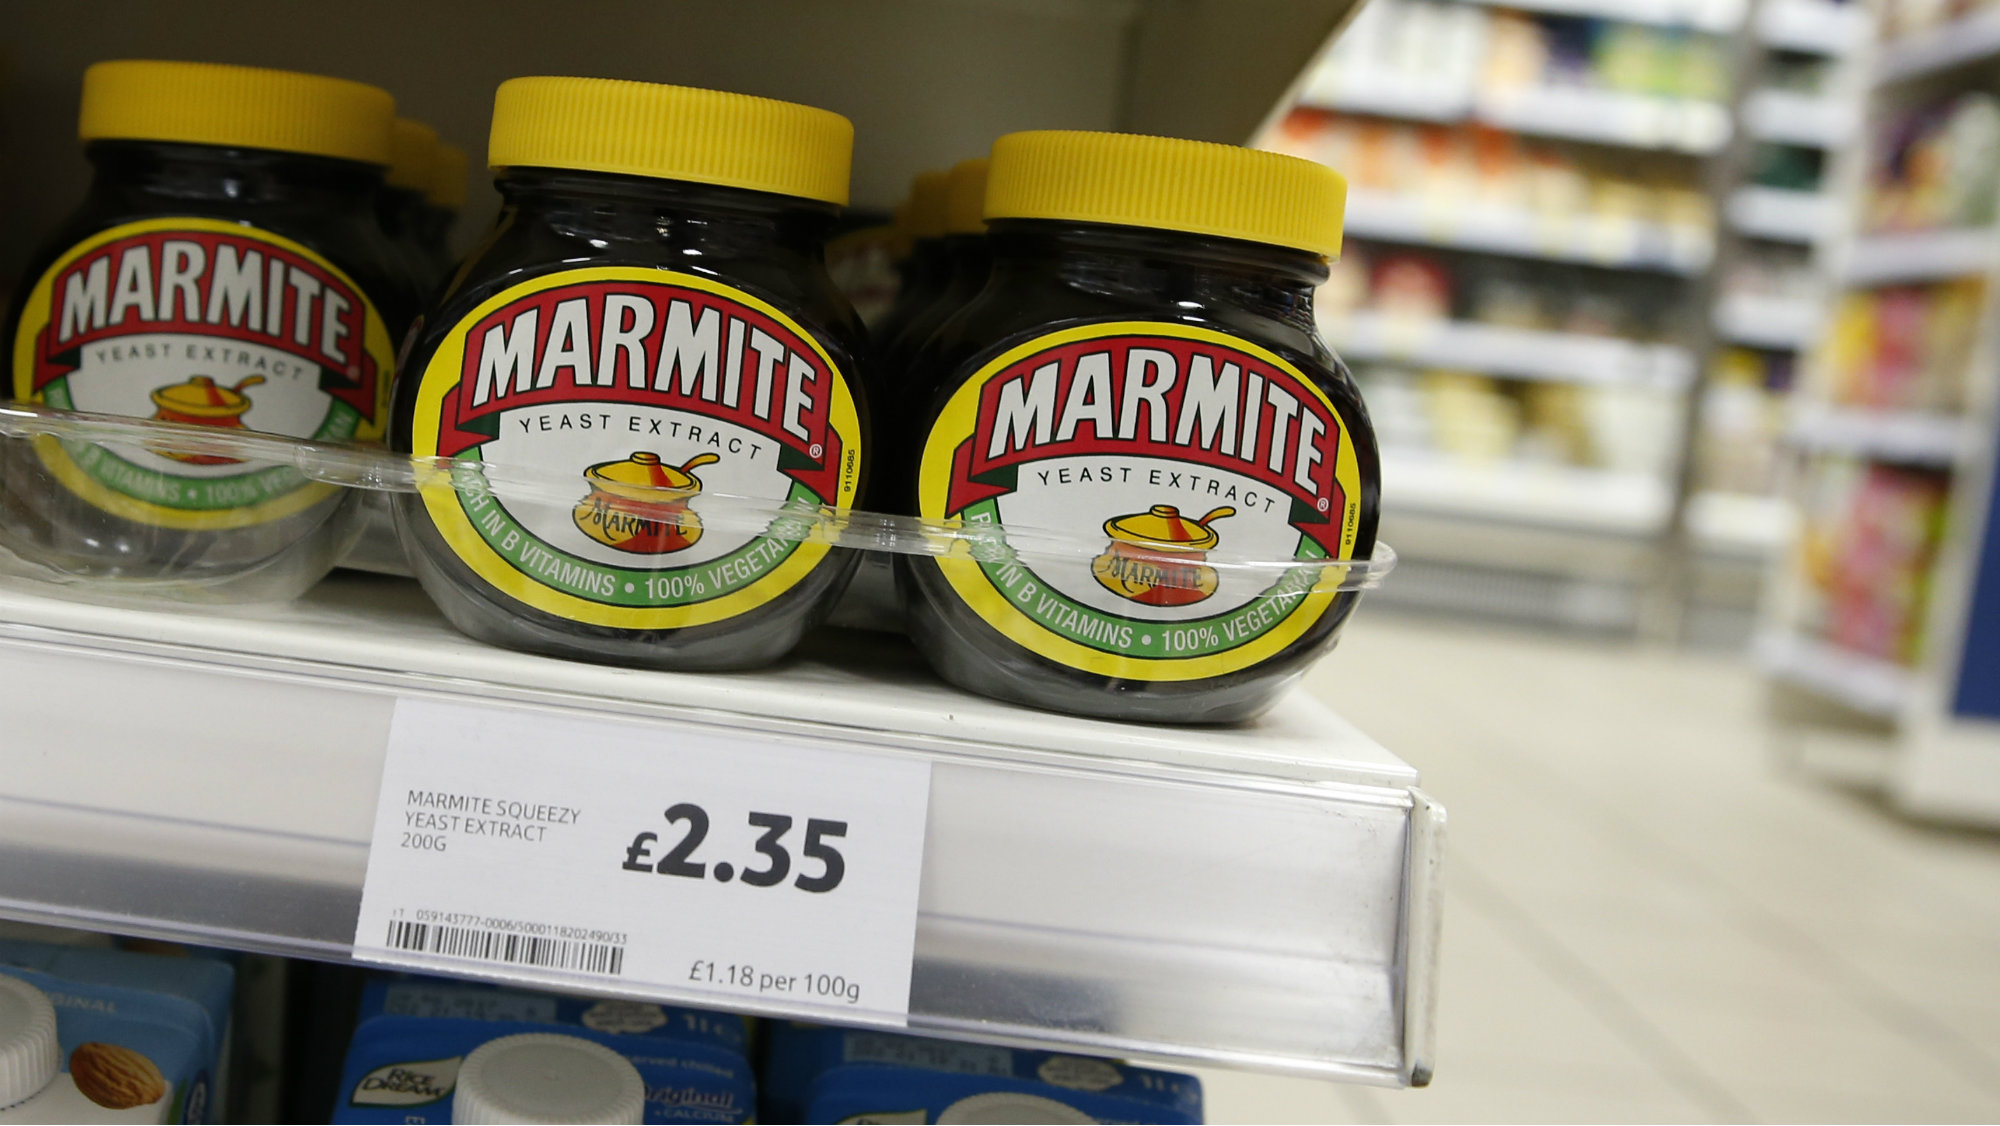 Jars of savoury spread 'Marmite' which is owned by the Anglo-Dutch multinational Unilever, on sale in a branch of Tesco in central London.